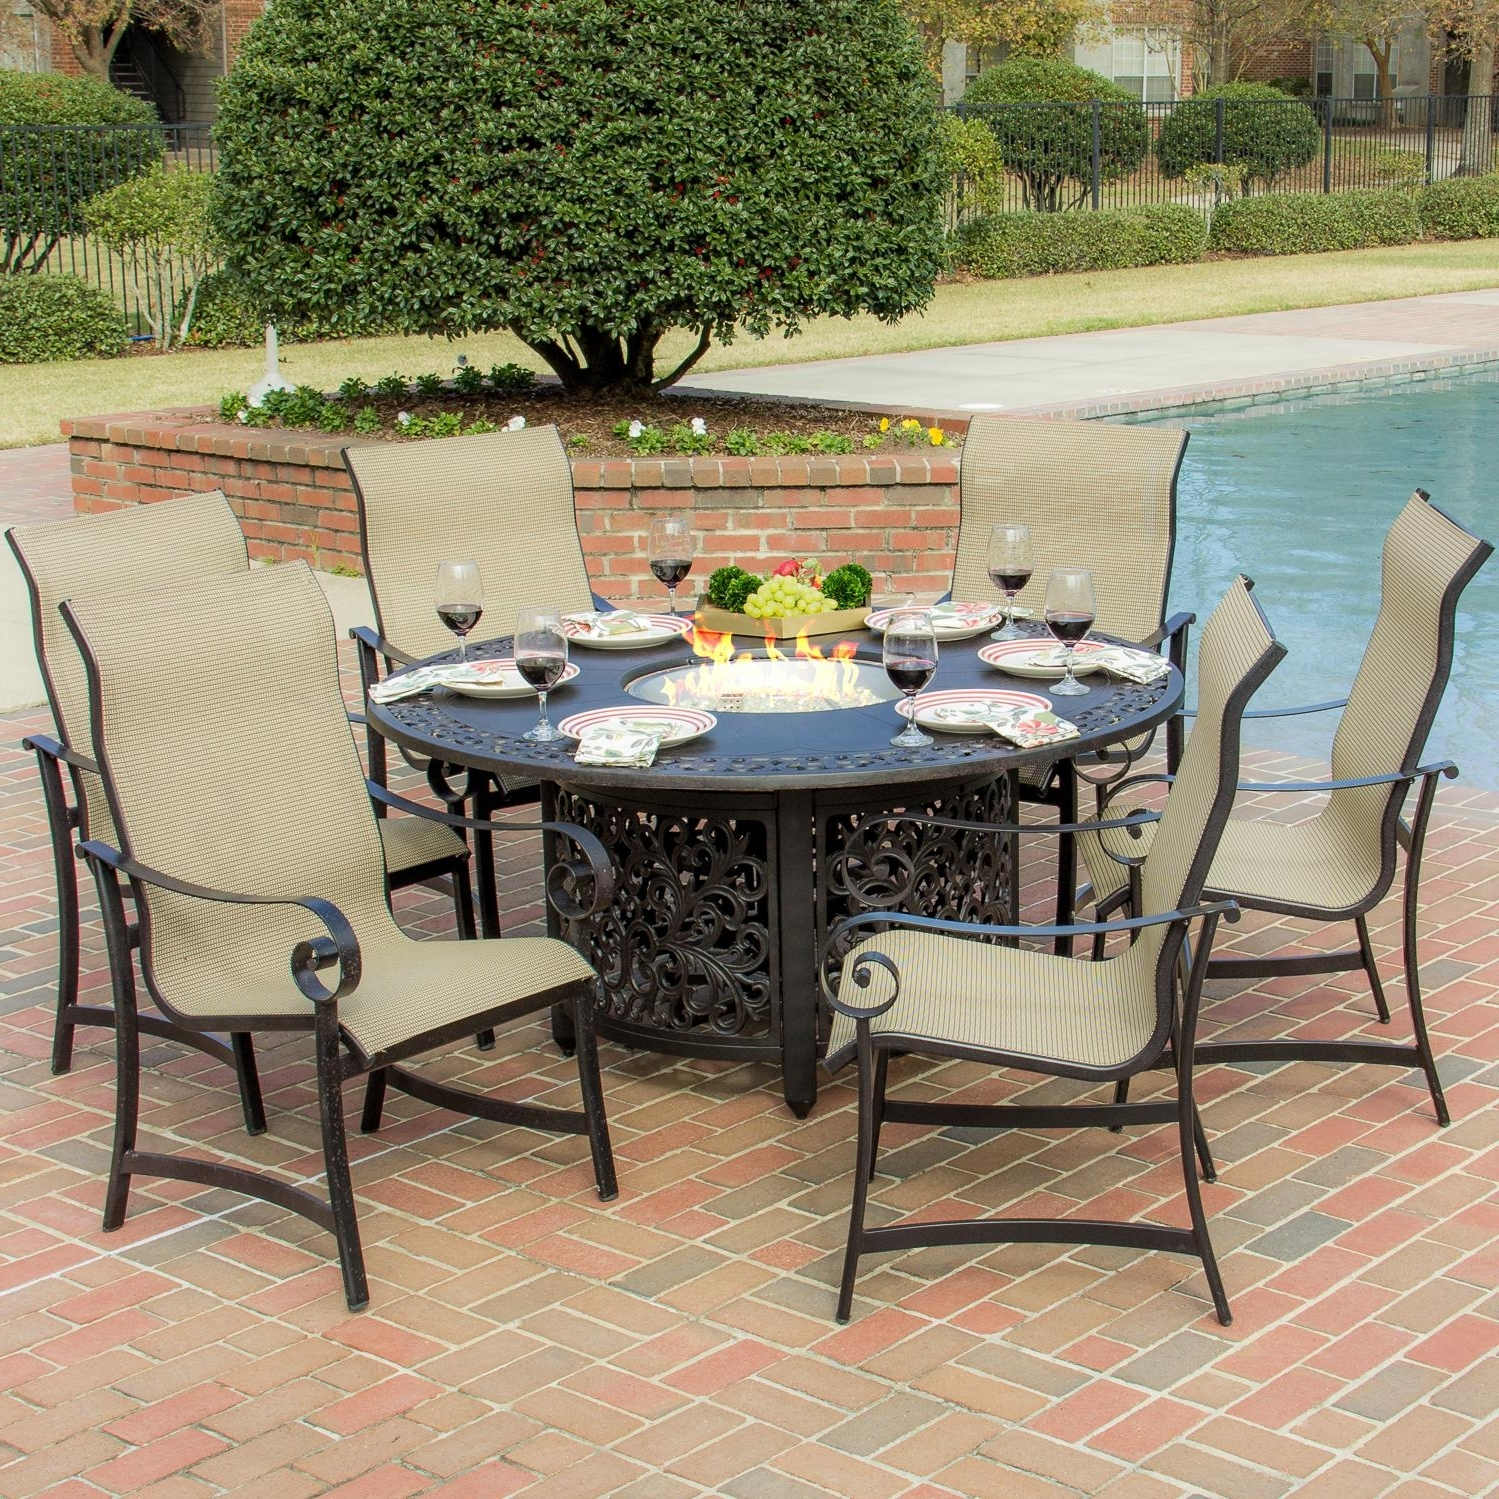 La Salle 7 Piece Sling Patio Dining Set With Fire Pit Table With Regard To Preferred Sling Patio Conversation Sets (View 4 of 20)